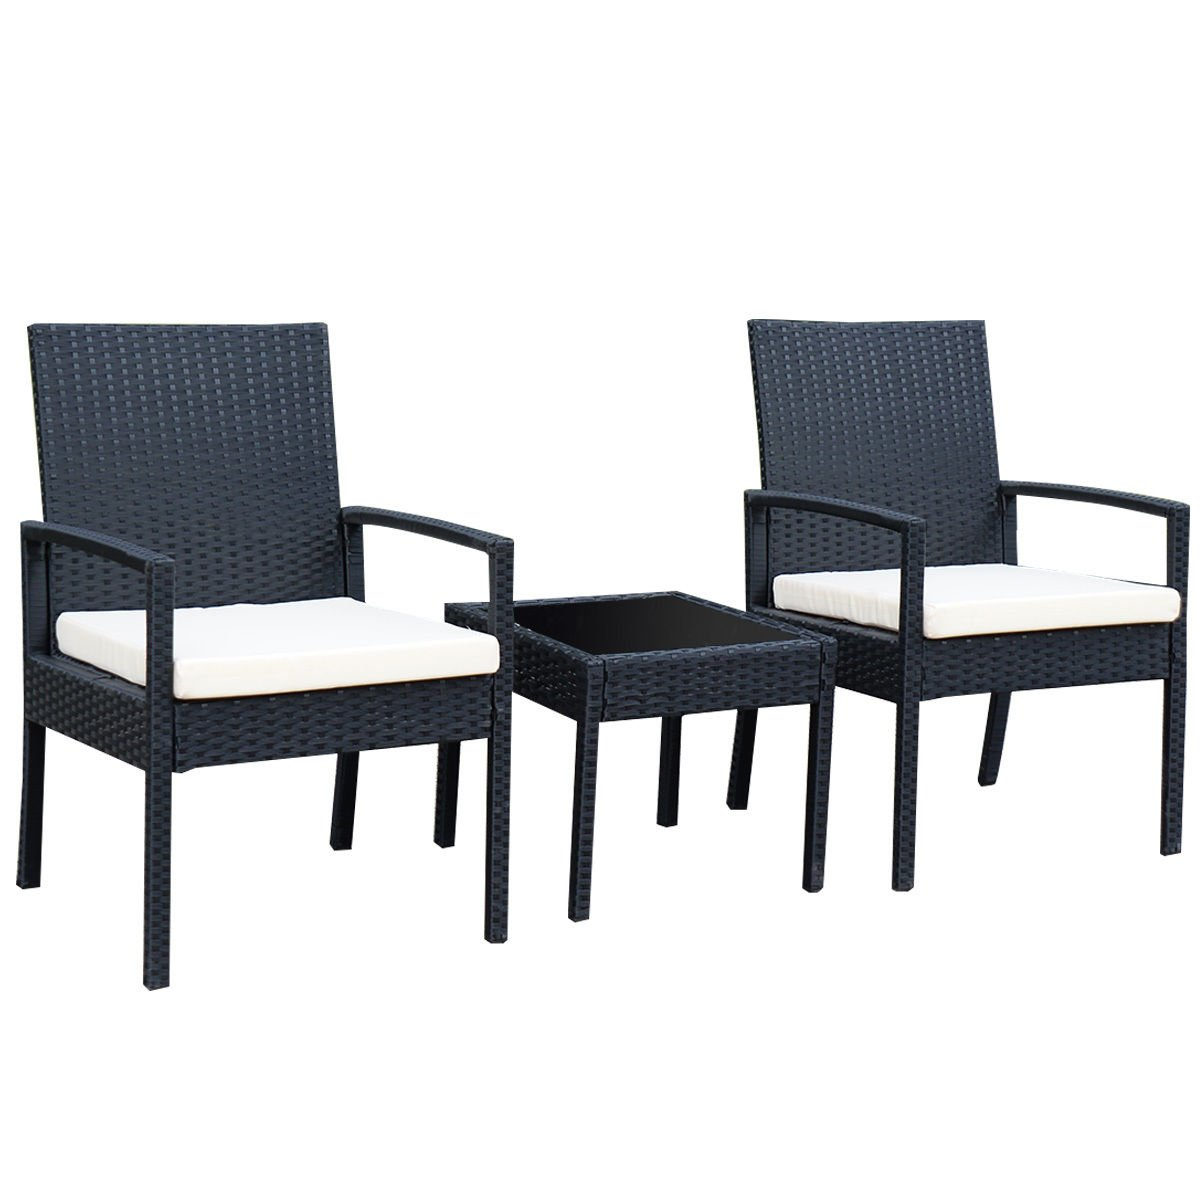 buying things mind amazon on to keep rattan chairs when wicker patio best selling in furniture single